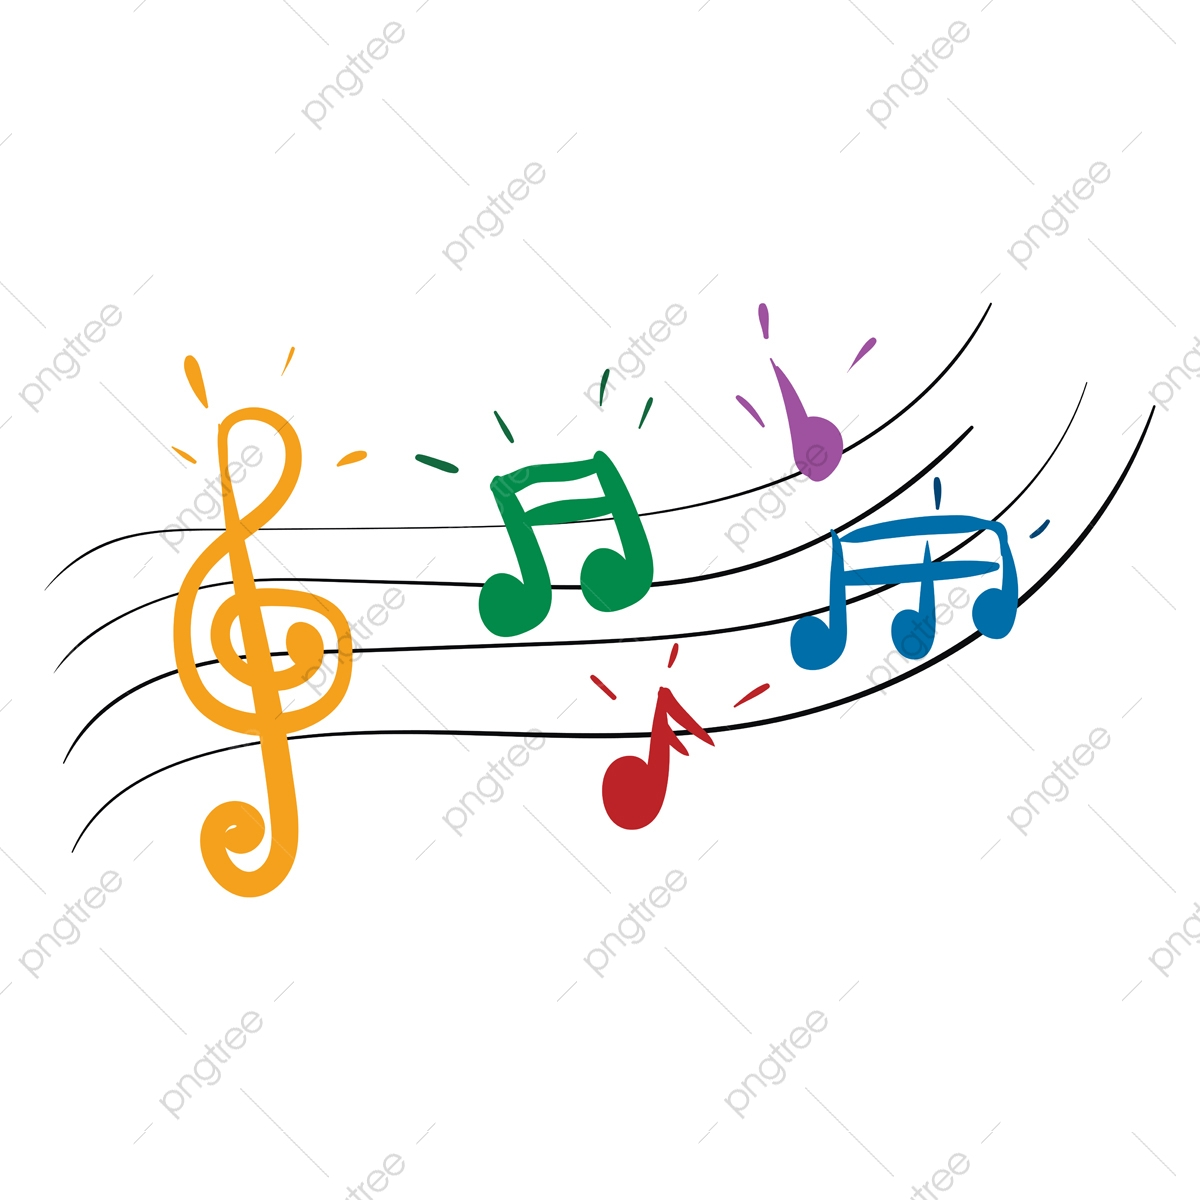 colorful music notes clipart transparent - colorful music notes symbols PNG  image with transparent background | TOPpng